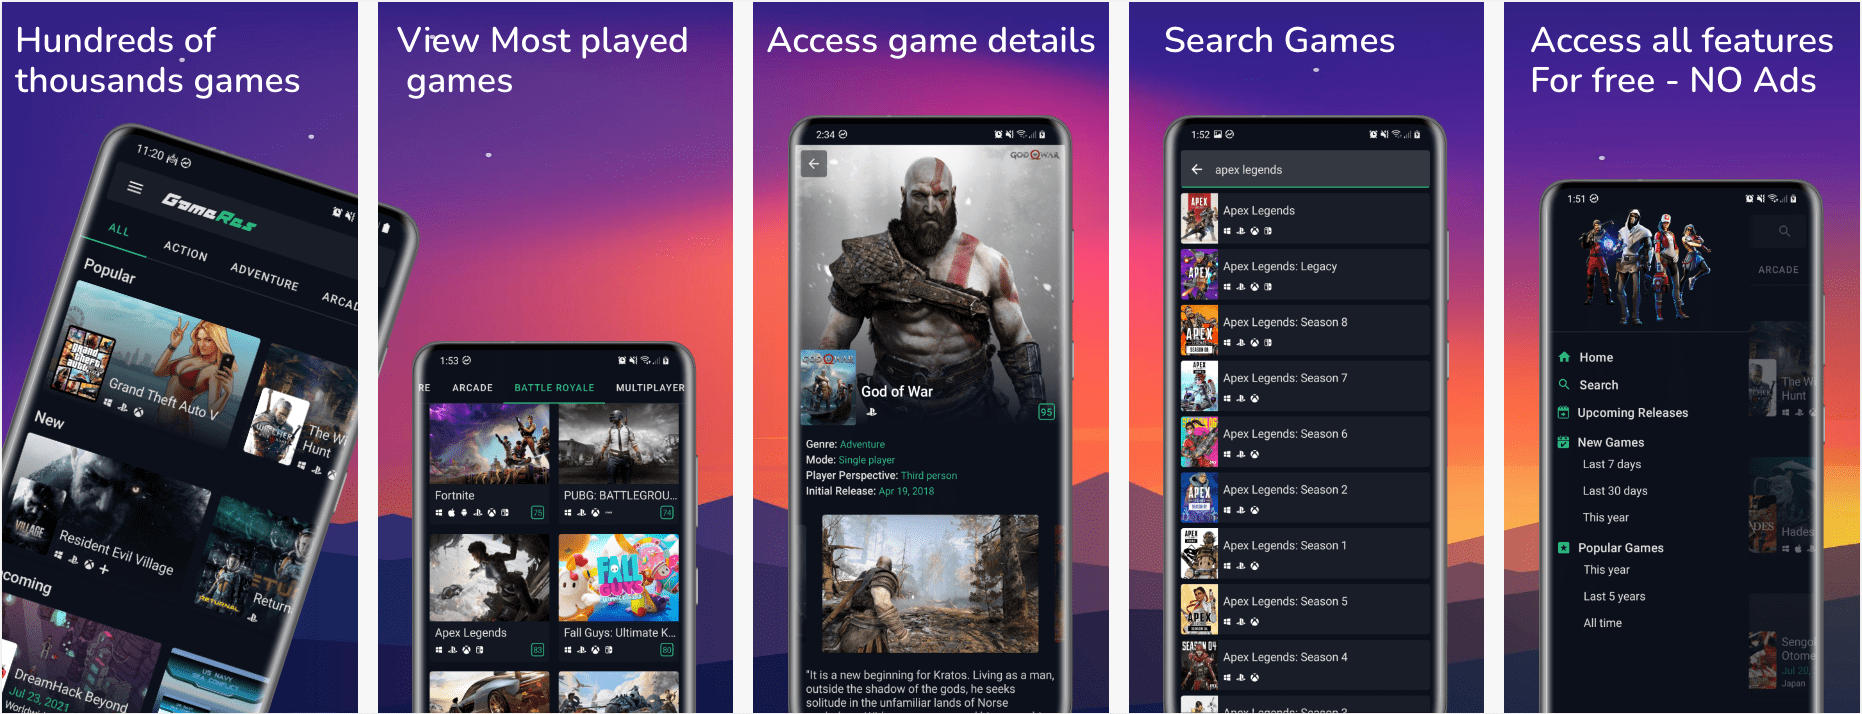 GameRes | Game Resources for gamers